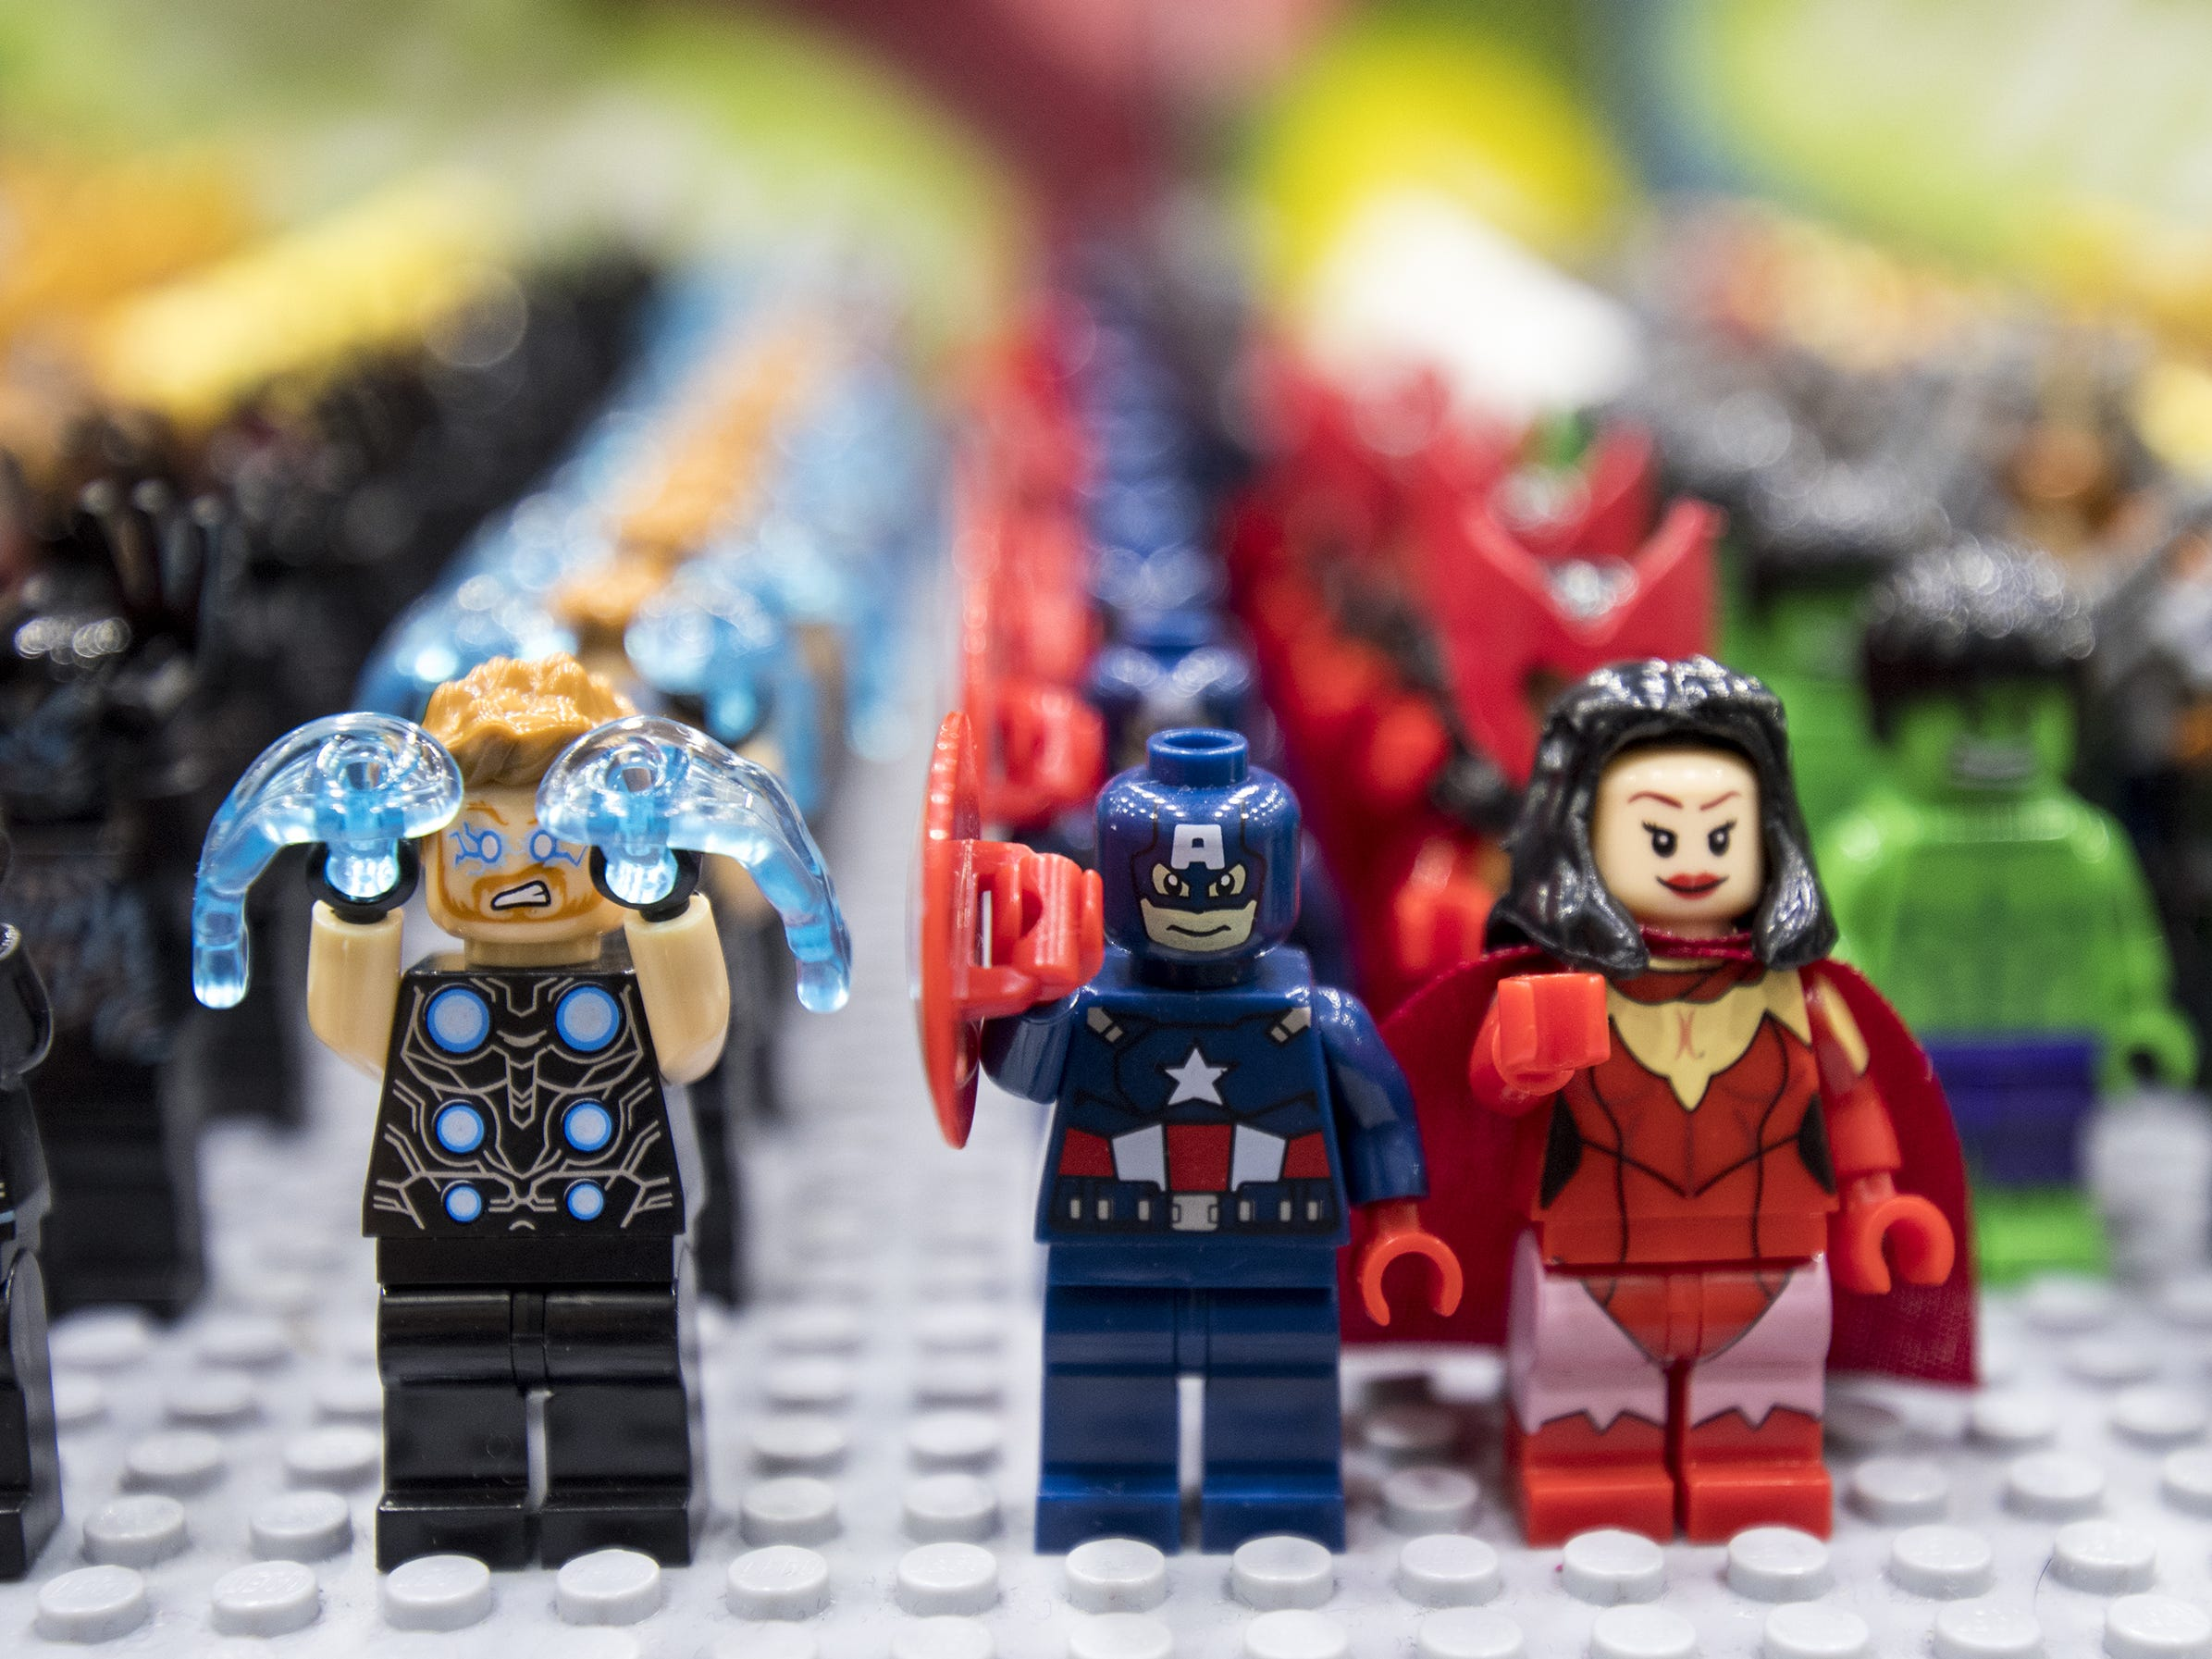 Lego Avengers are lined up for sale at the Cincinnati Comic Expo at the Duke Energy Center, running through Sunday.